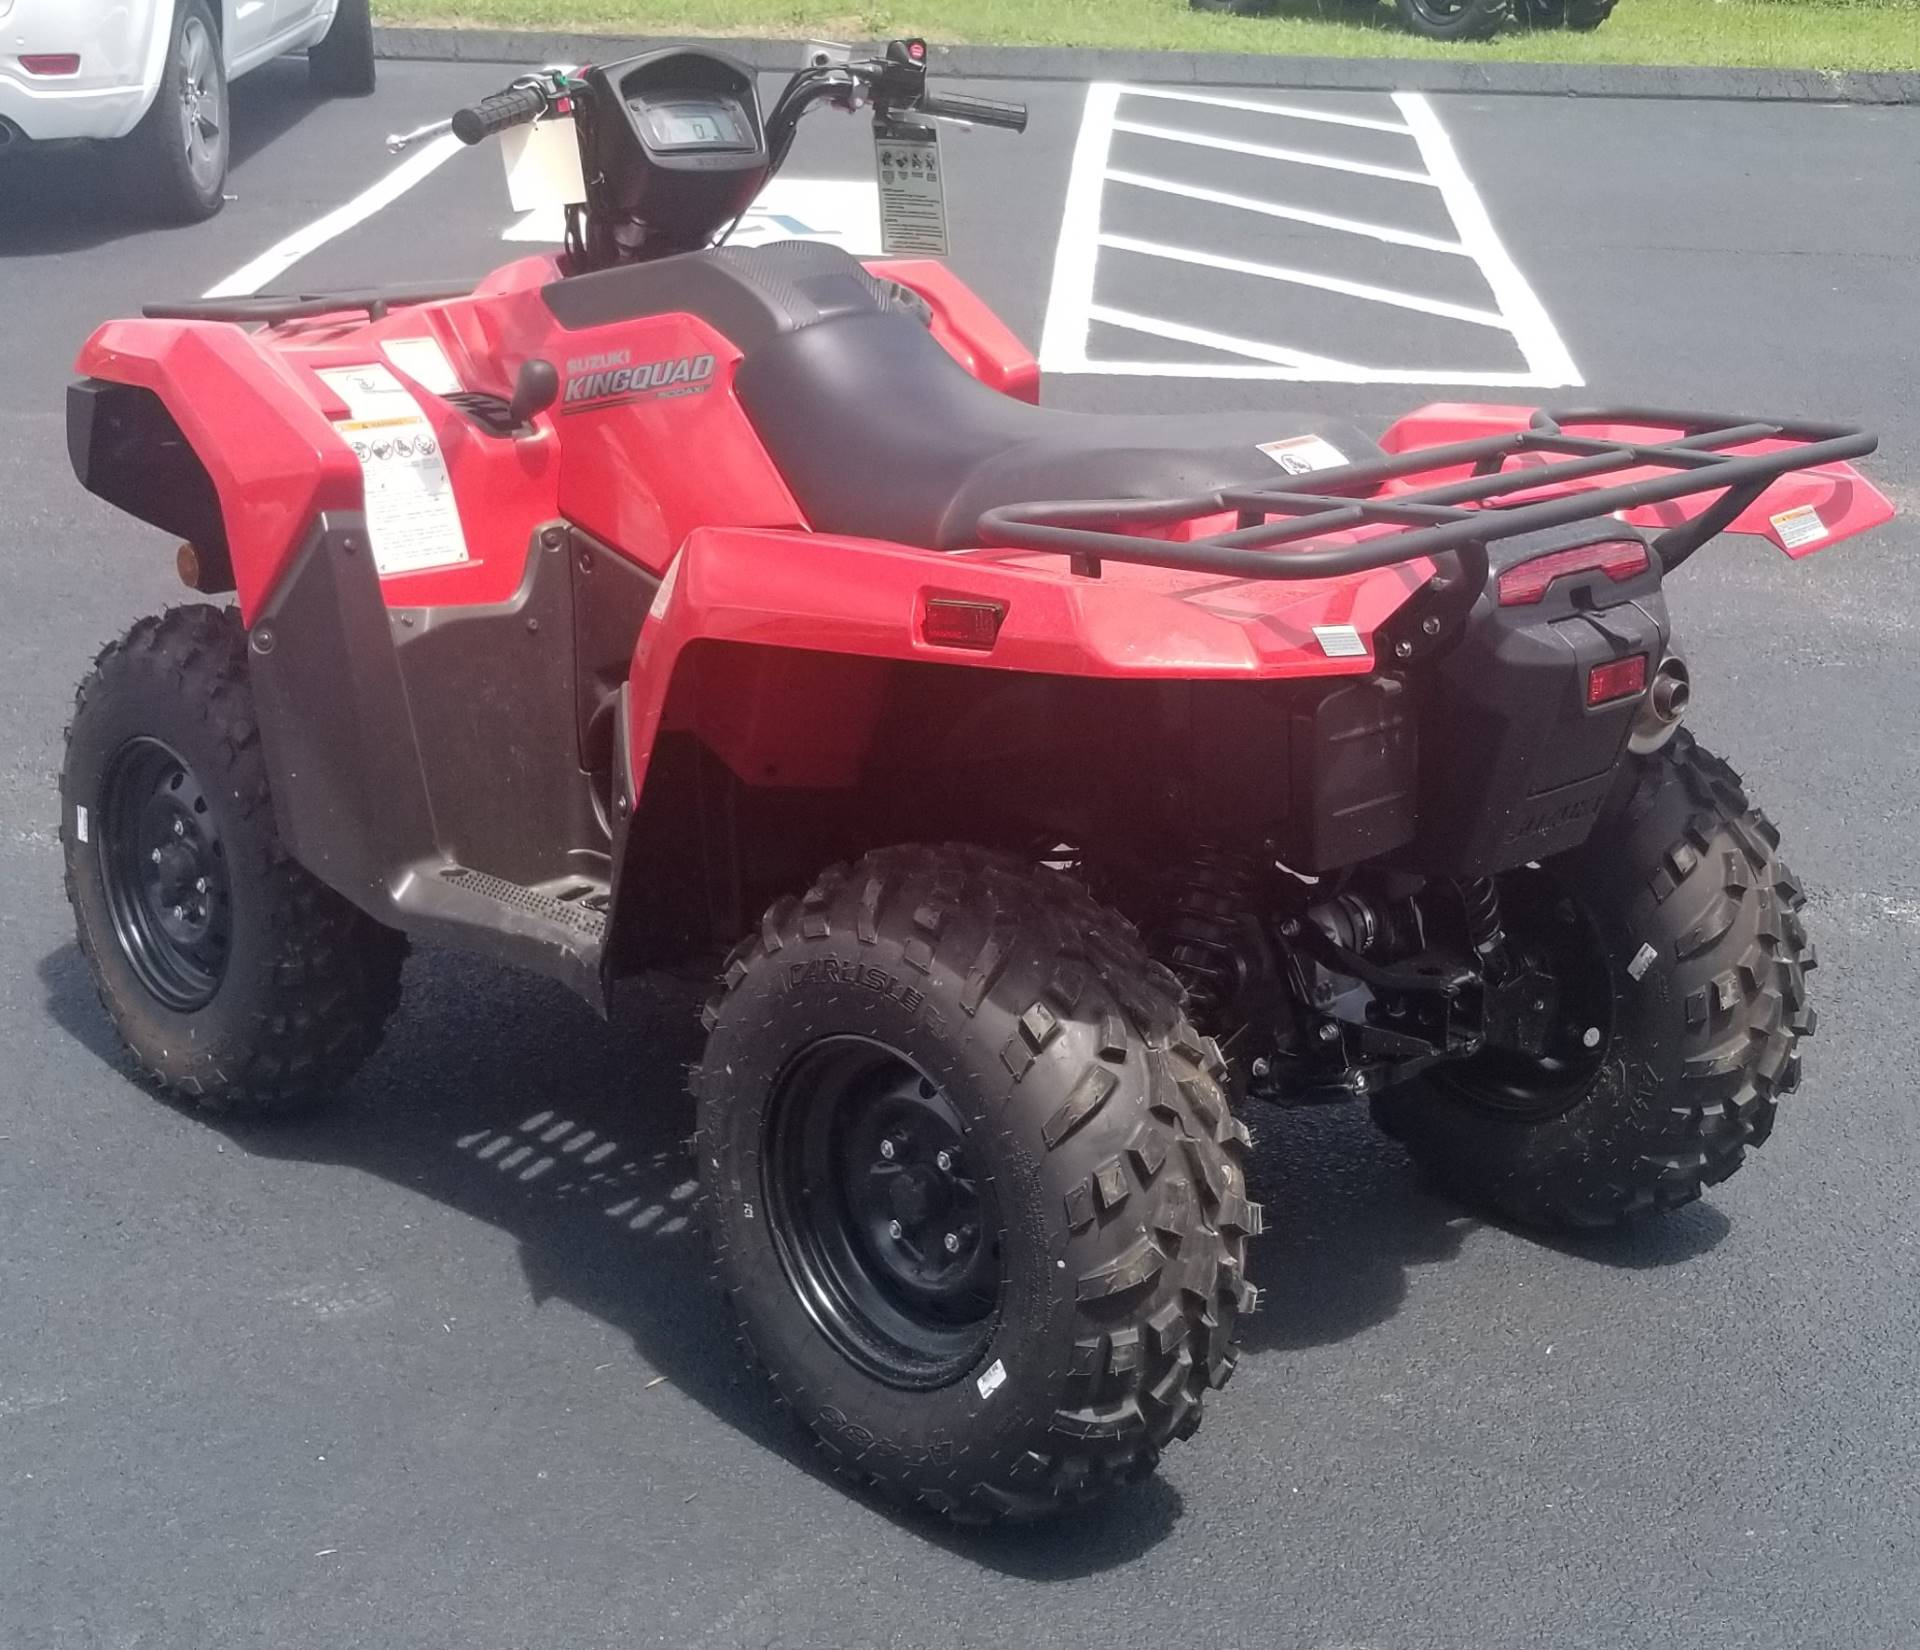 2019 Suzuki KingQuad 500AXi in Statesboro, Georgia - Photo 5